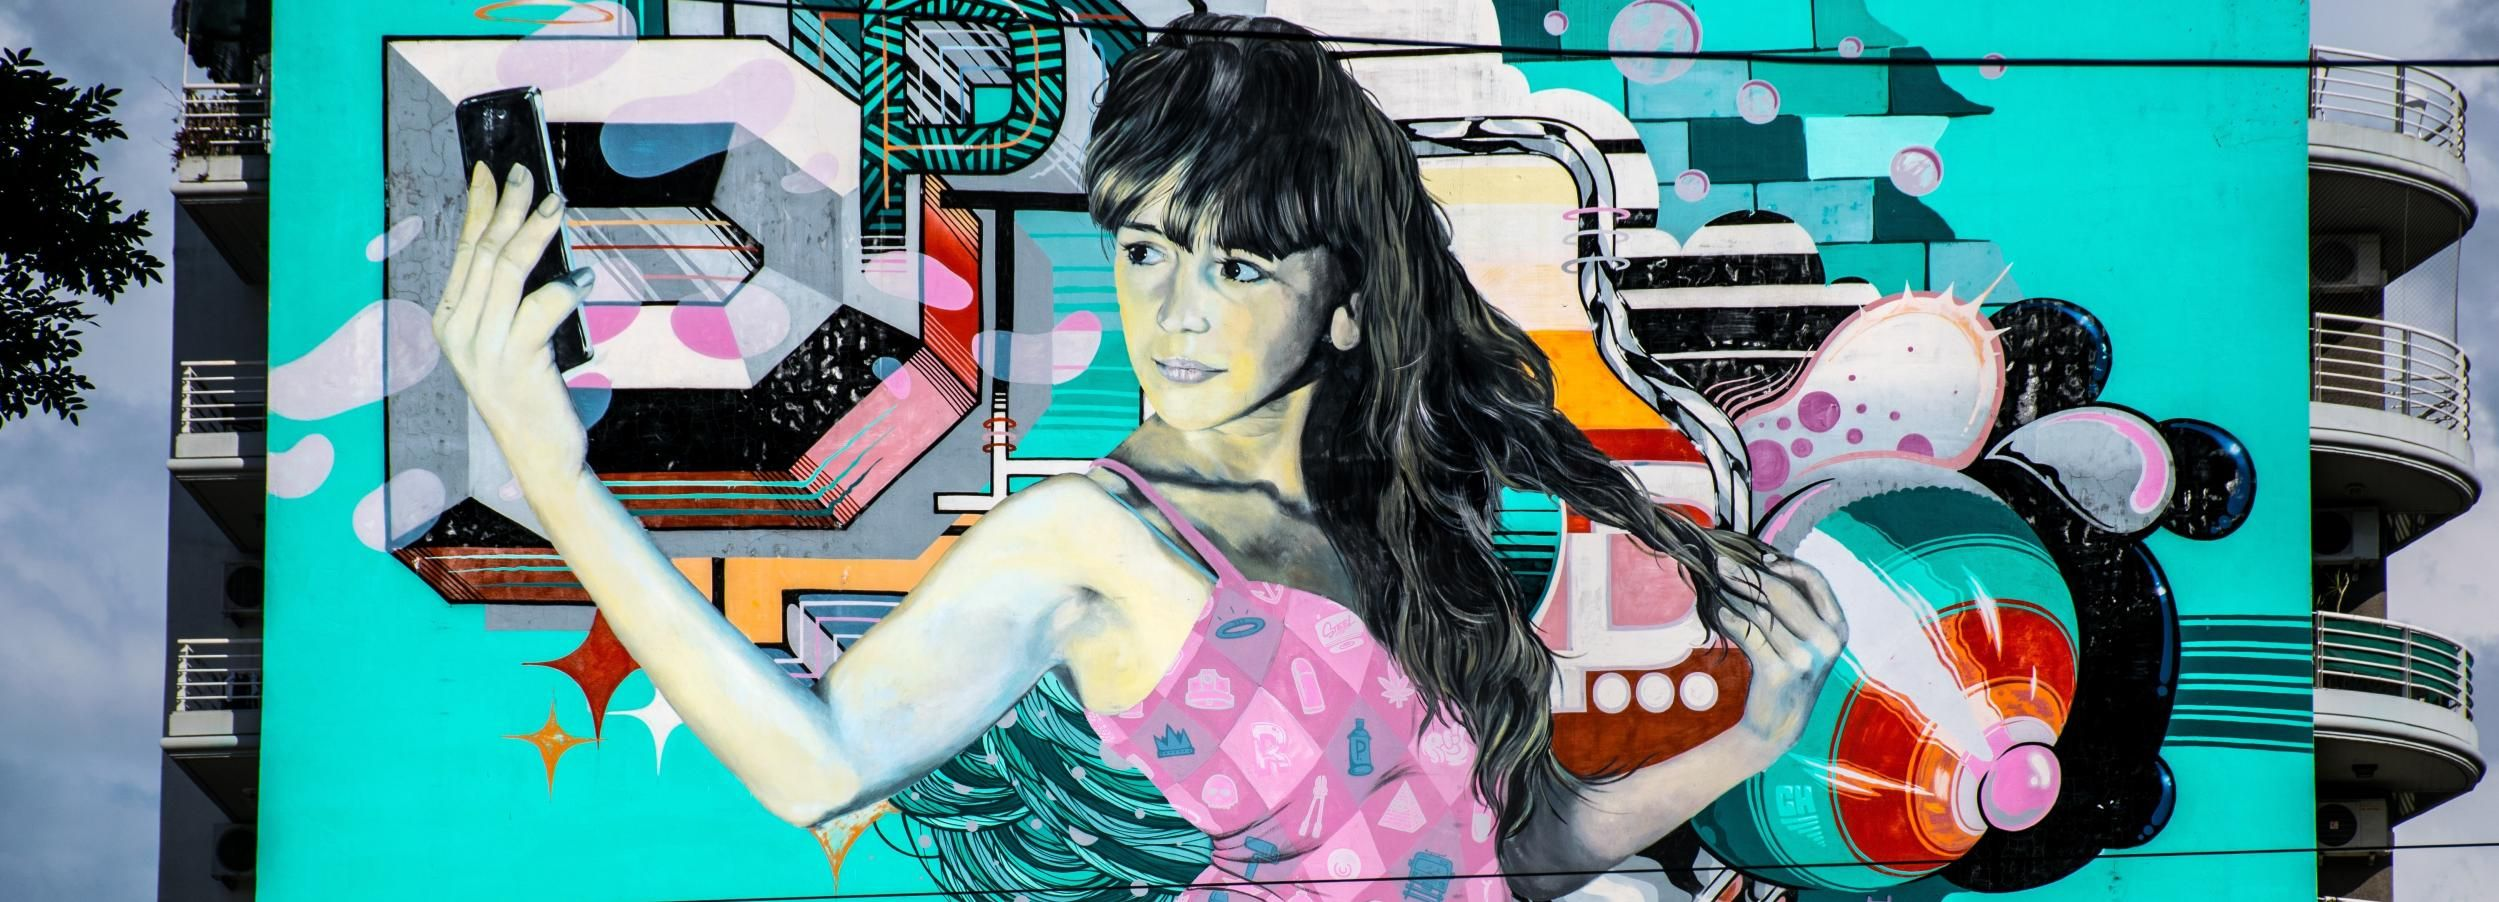 Palermo: Graffiti and Street Art Guided Tour in English